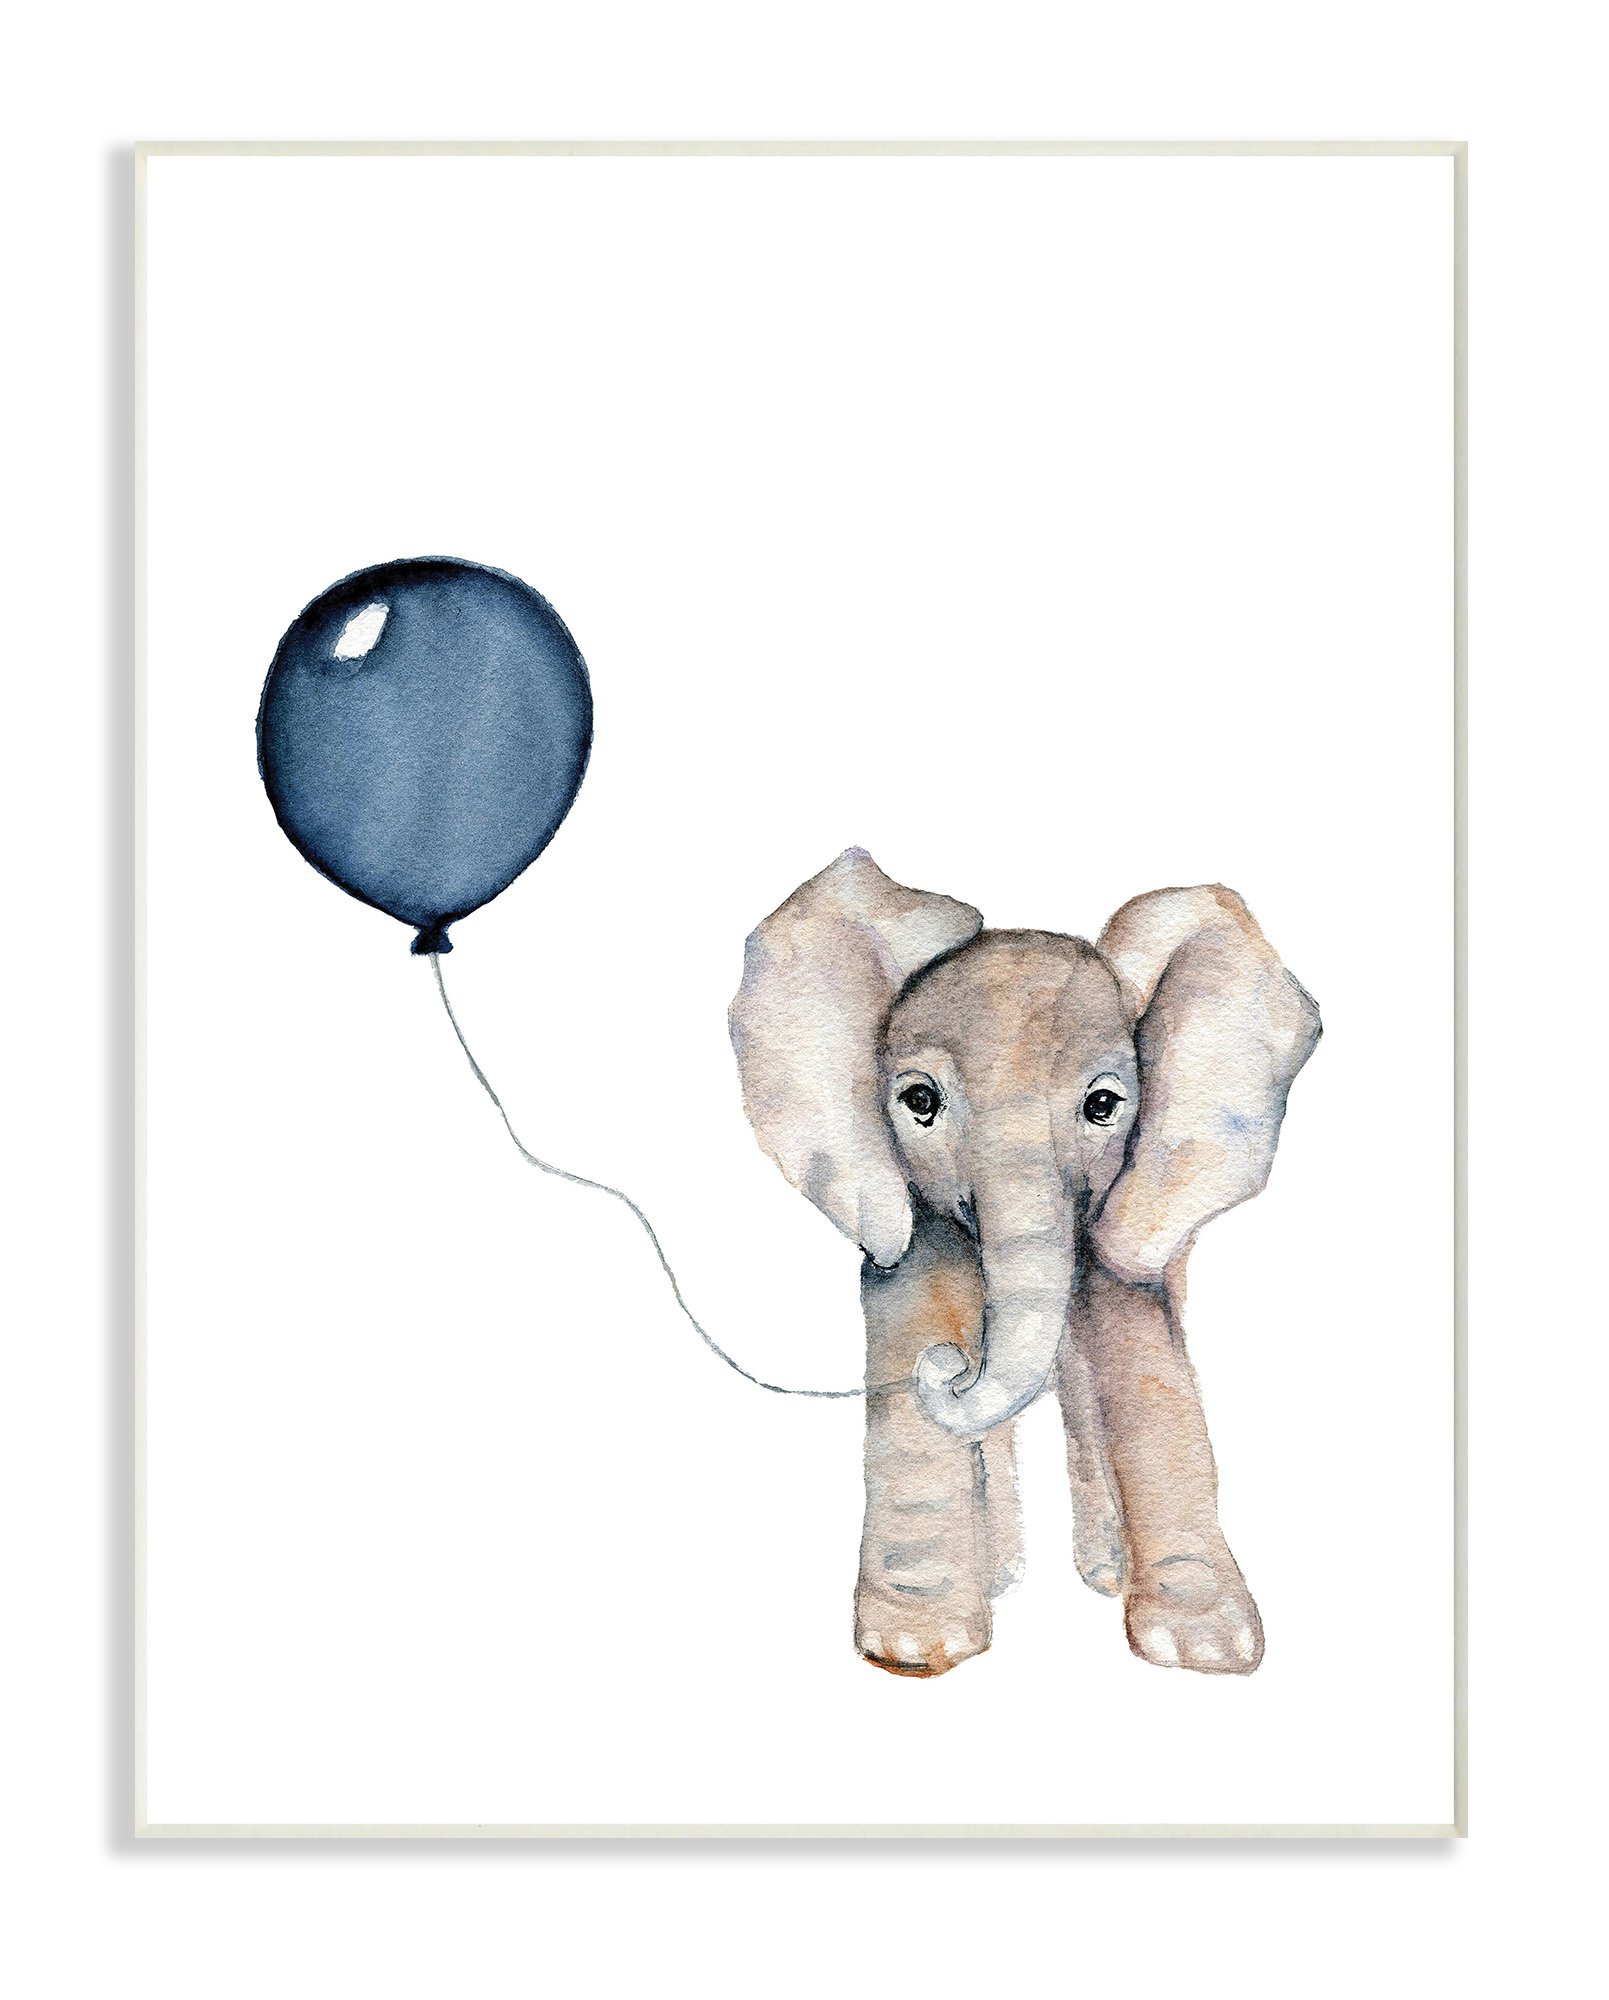 The Kids Room by Stupell Baby Elephant with Blue Balloon Wall Plaque Art, 10 x 15 by The Kids Room by Stupell (Image #1)